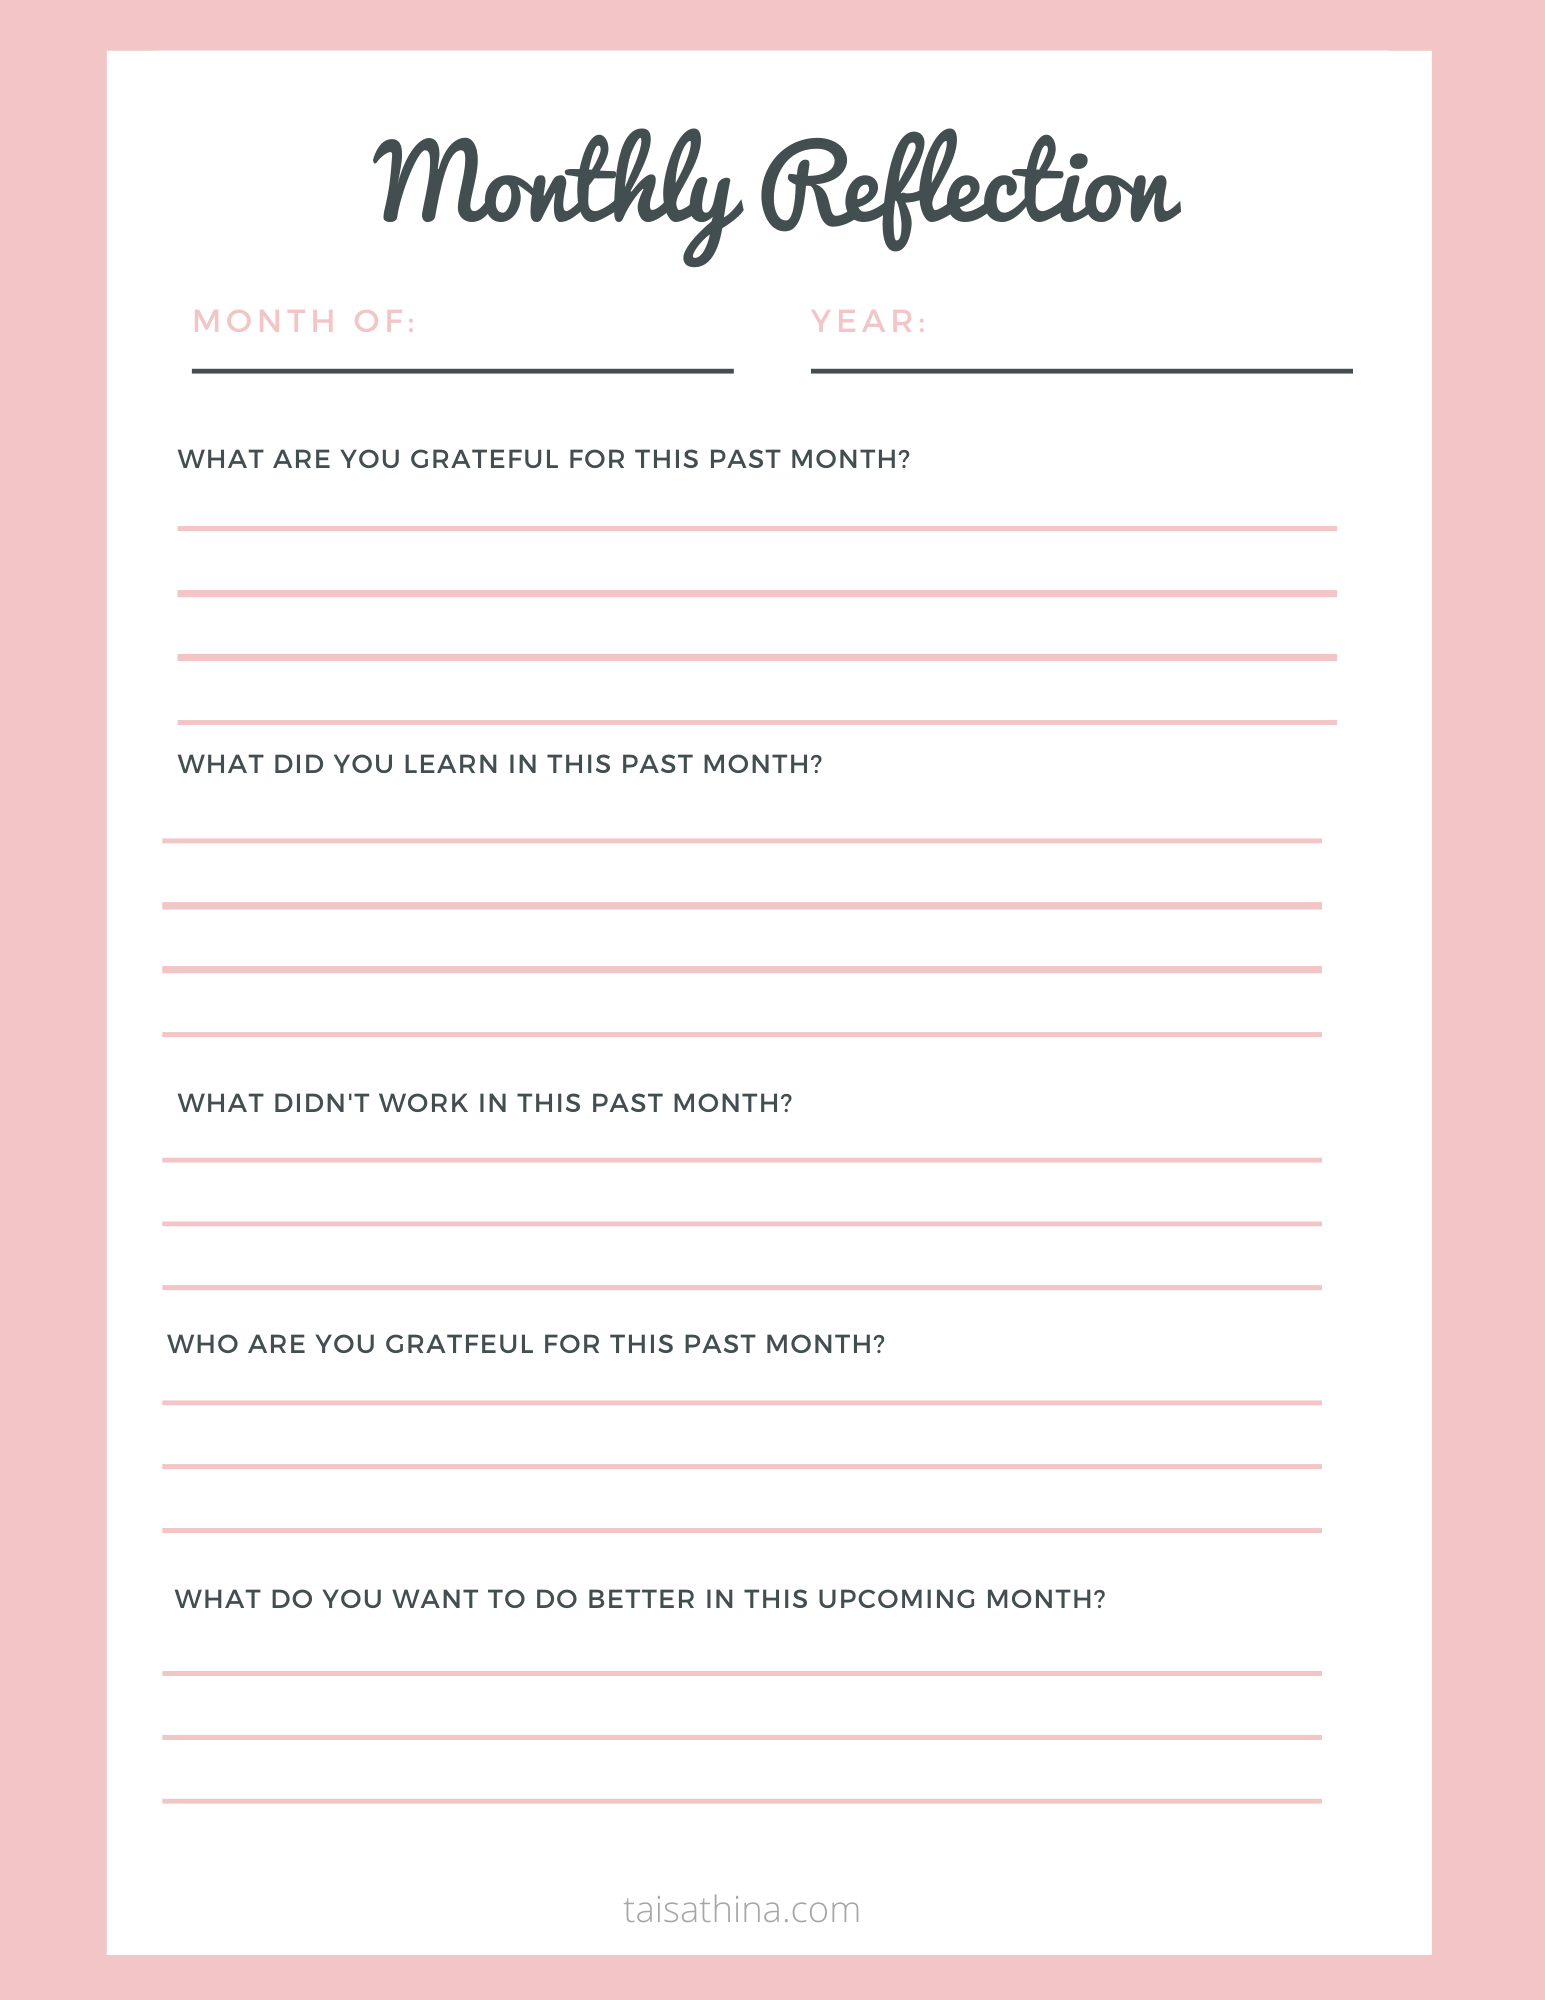 Monthly Reflection Printable Planner Sheet Daily Journal Prompts Journal Writing Prompts Reflective Journal [ 2000 x 1545 Pixel ]